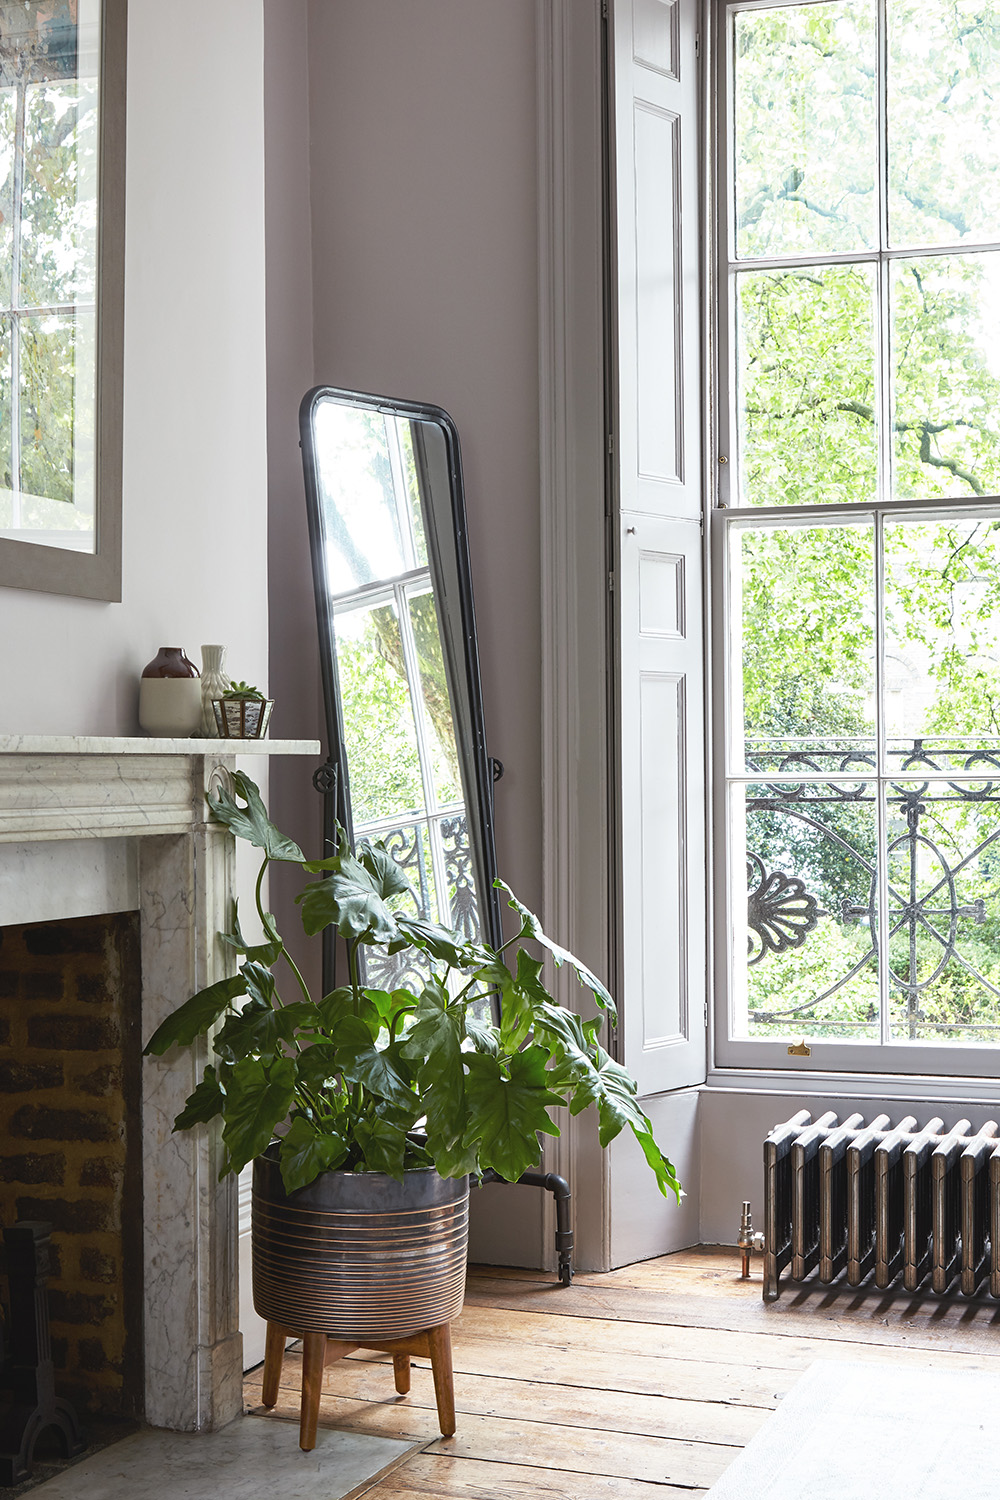 Canonbury Square_interior_design_sourcing_styling_furniture_mirror_plants